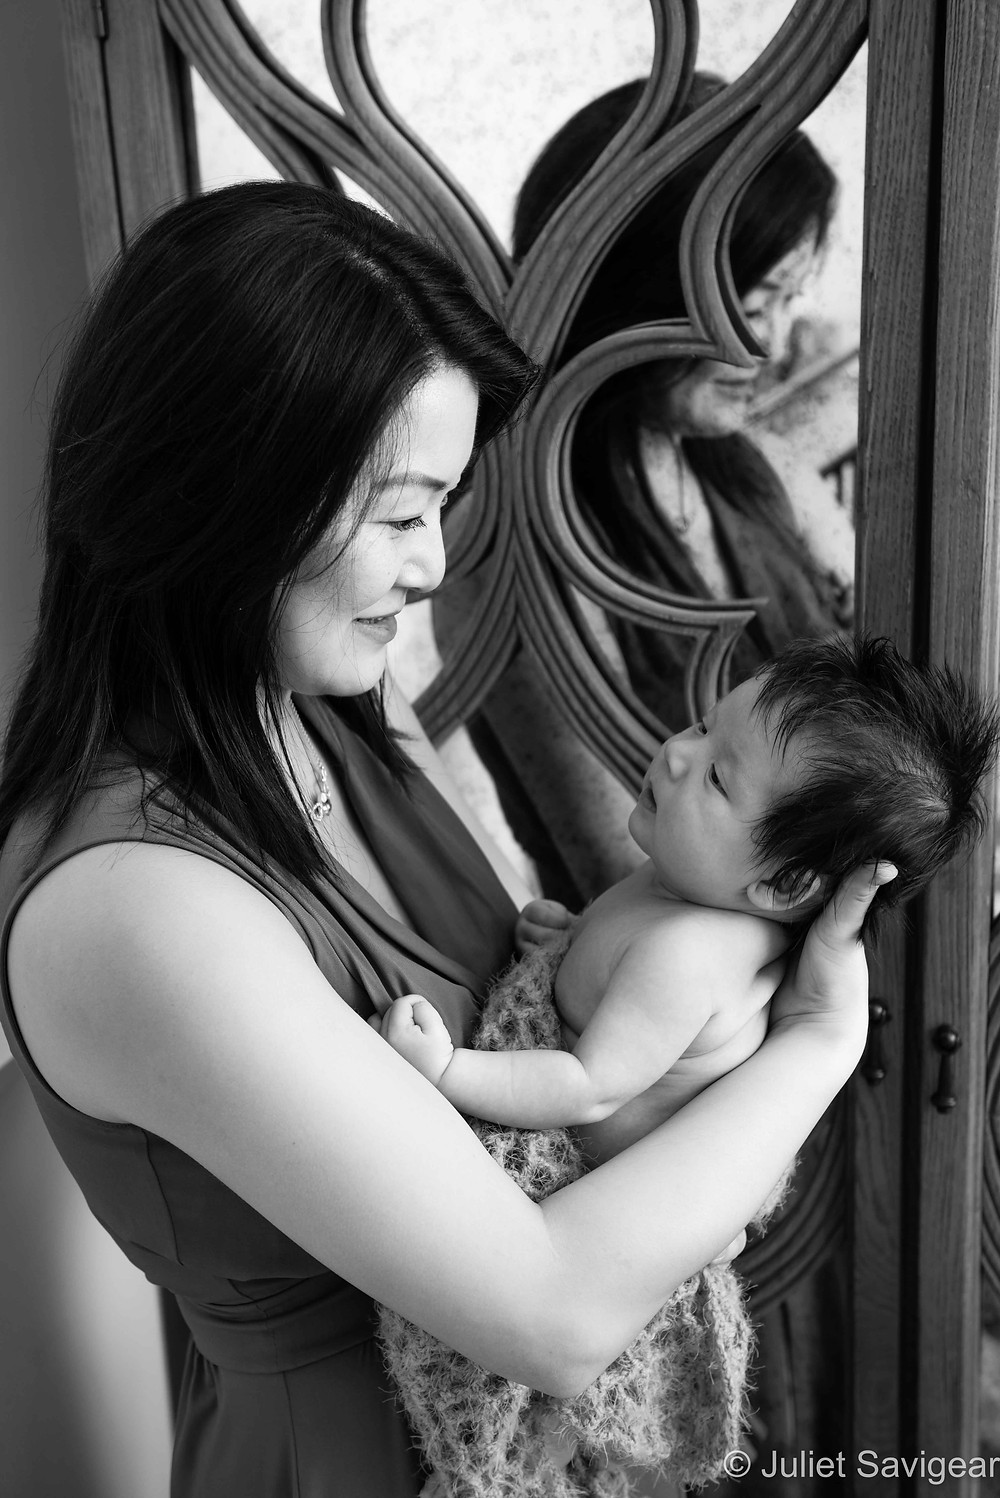 Mummy's Arms - Baby & Family Photography, Clapham